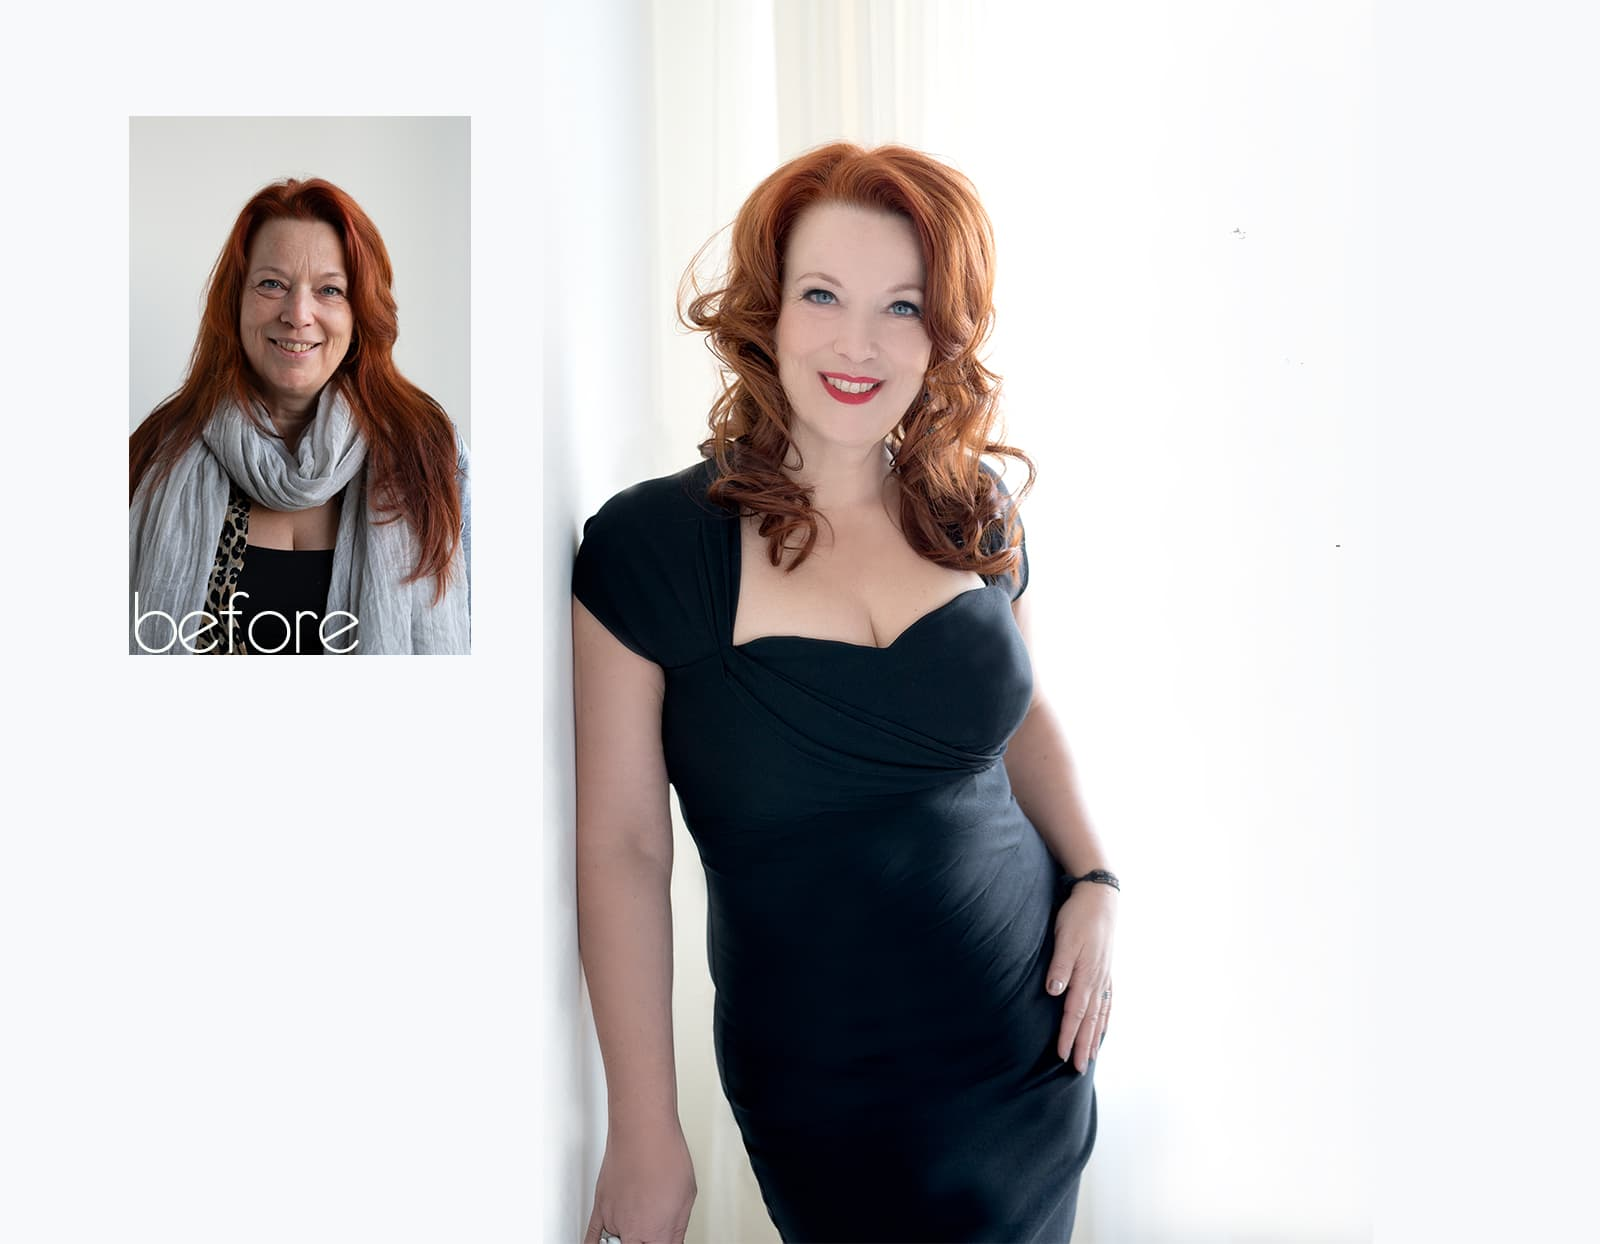 before after fotoshoot Anki Rotterdam beauty headshot corporate branding fotostudio Katinka Tromp